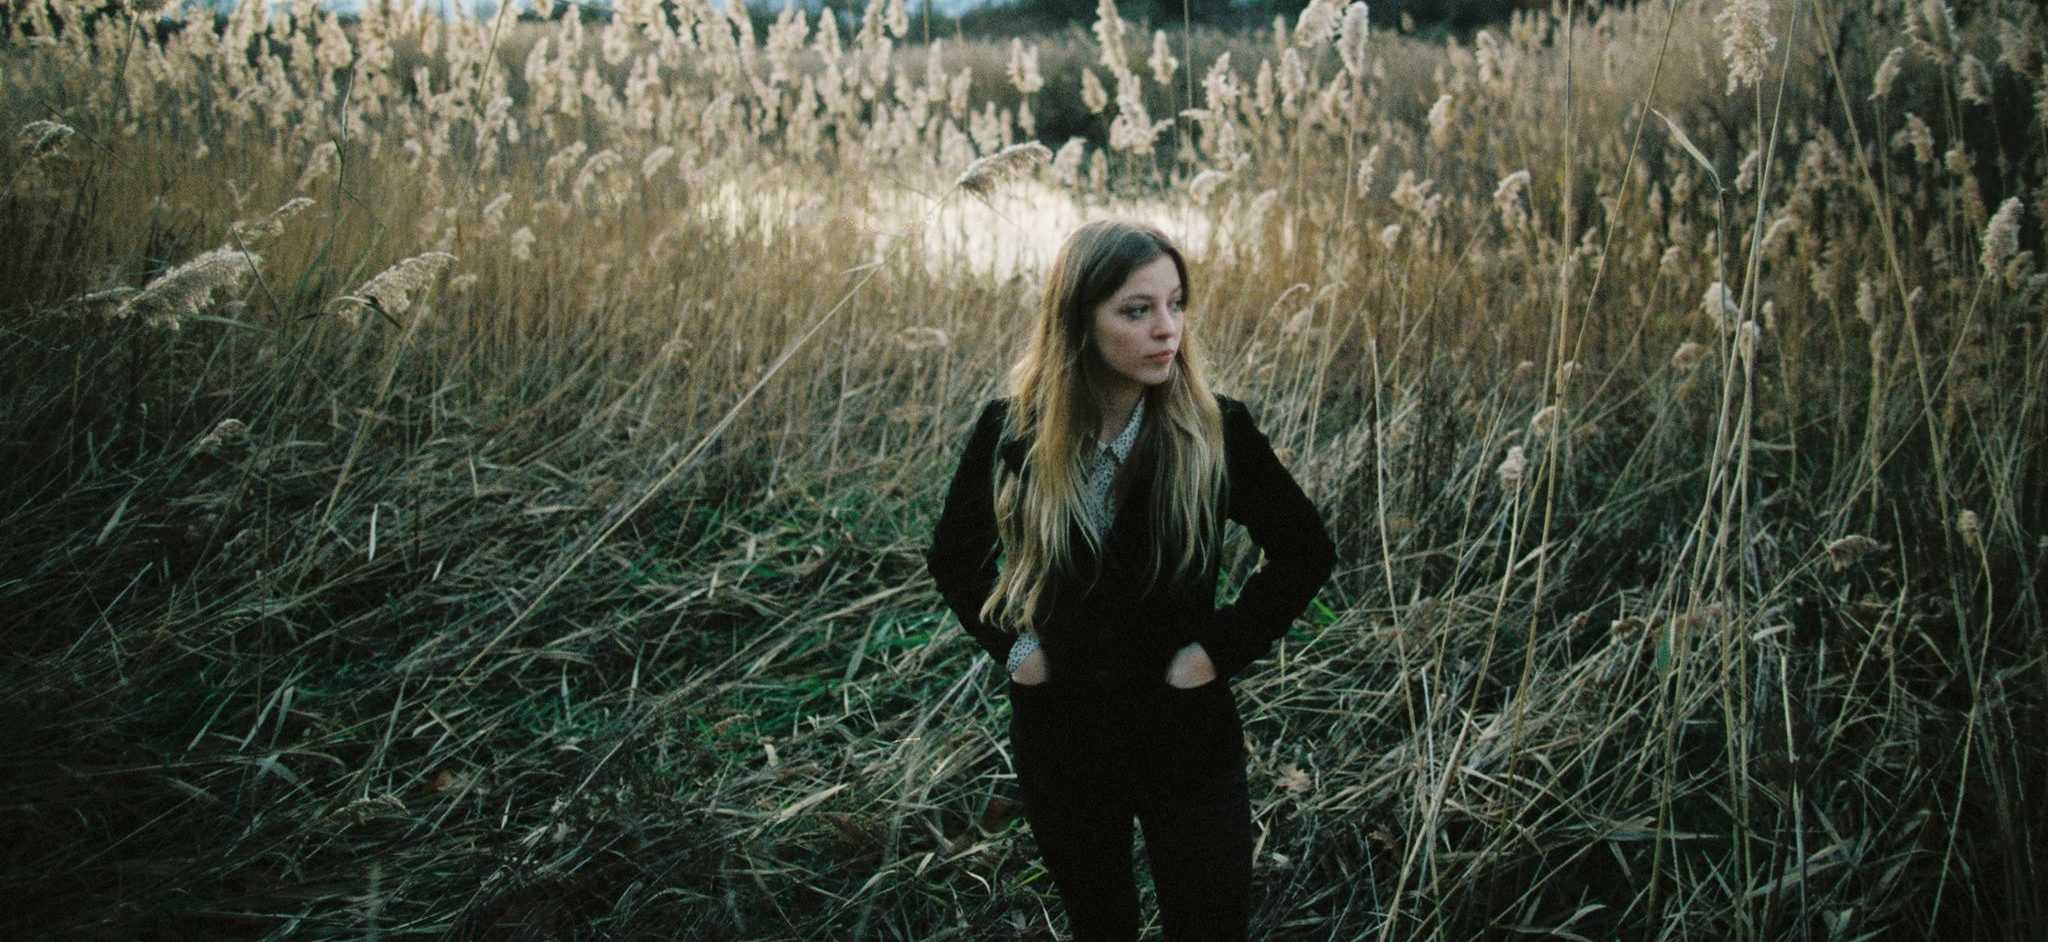 review-something american-by-jade bird-indie music-indie folk-indie-album review-music blog-indie blog-new music-wolf in a suit-wolfinasuit